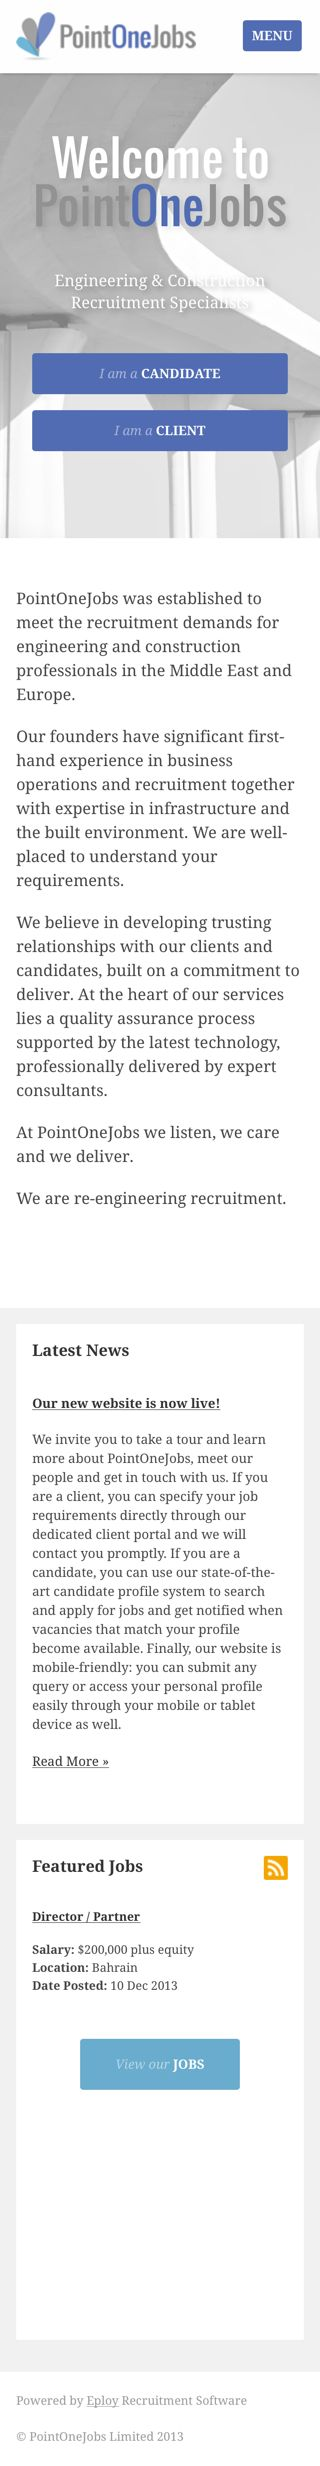 Point One Jobs mobile career site